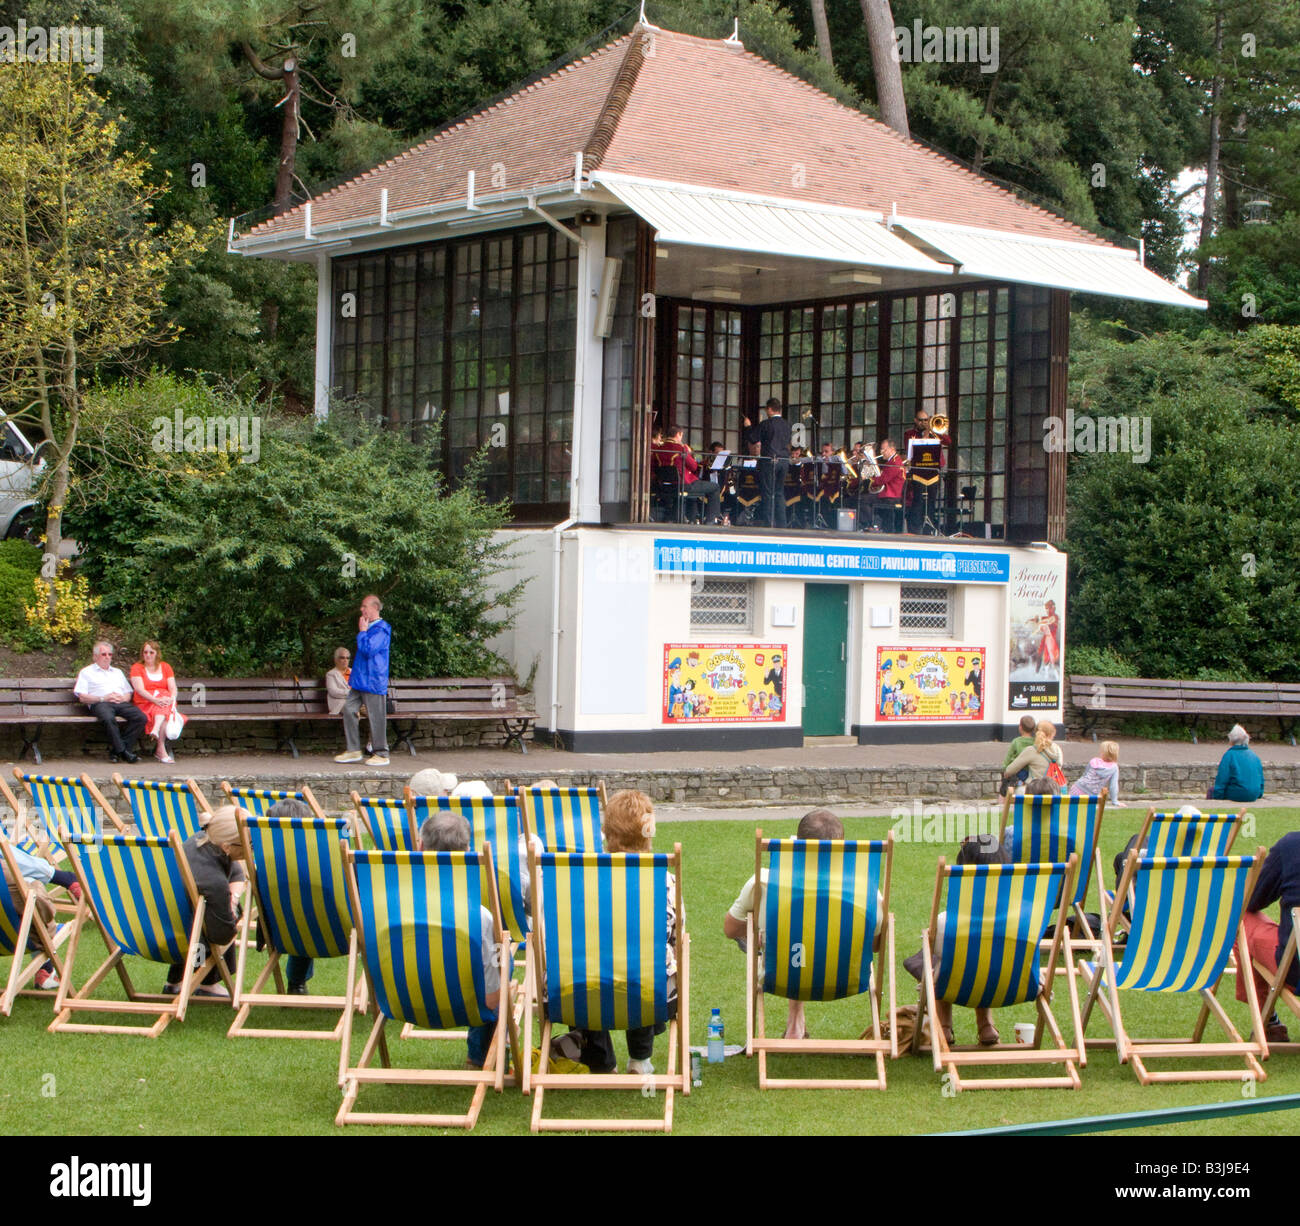 People in deck chairs watching a Concert in Bournemouth Gardens, Dorset, UK - Stock Image